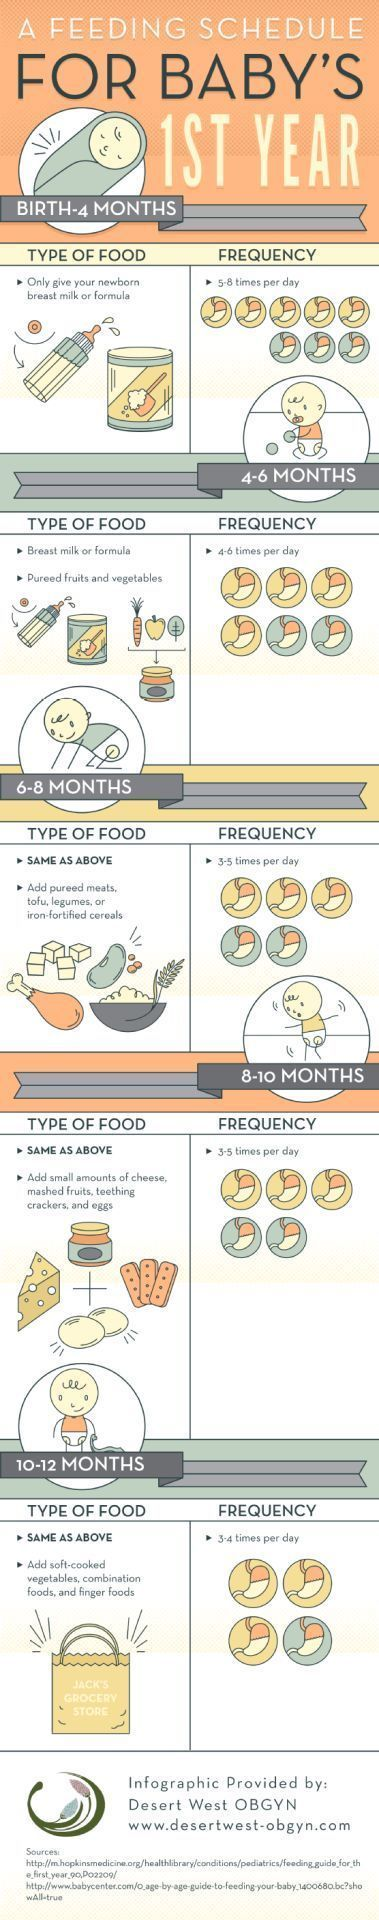 Start feeding your baby between 3 and 5 times each day when he reaches 6 months of age. You can introduce him to pureed meats, tofu, legumes, or iron-fortified cereals during this time! Learn more by...